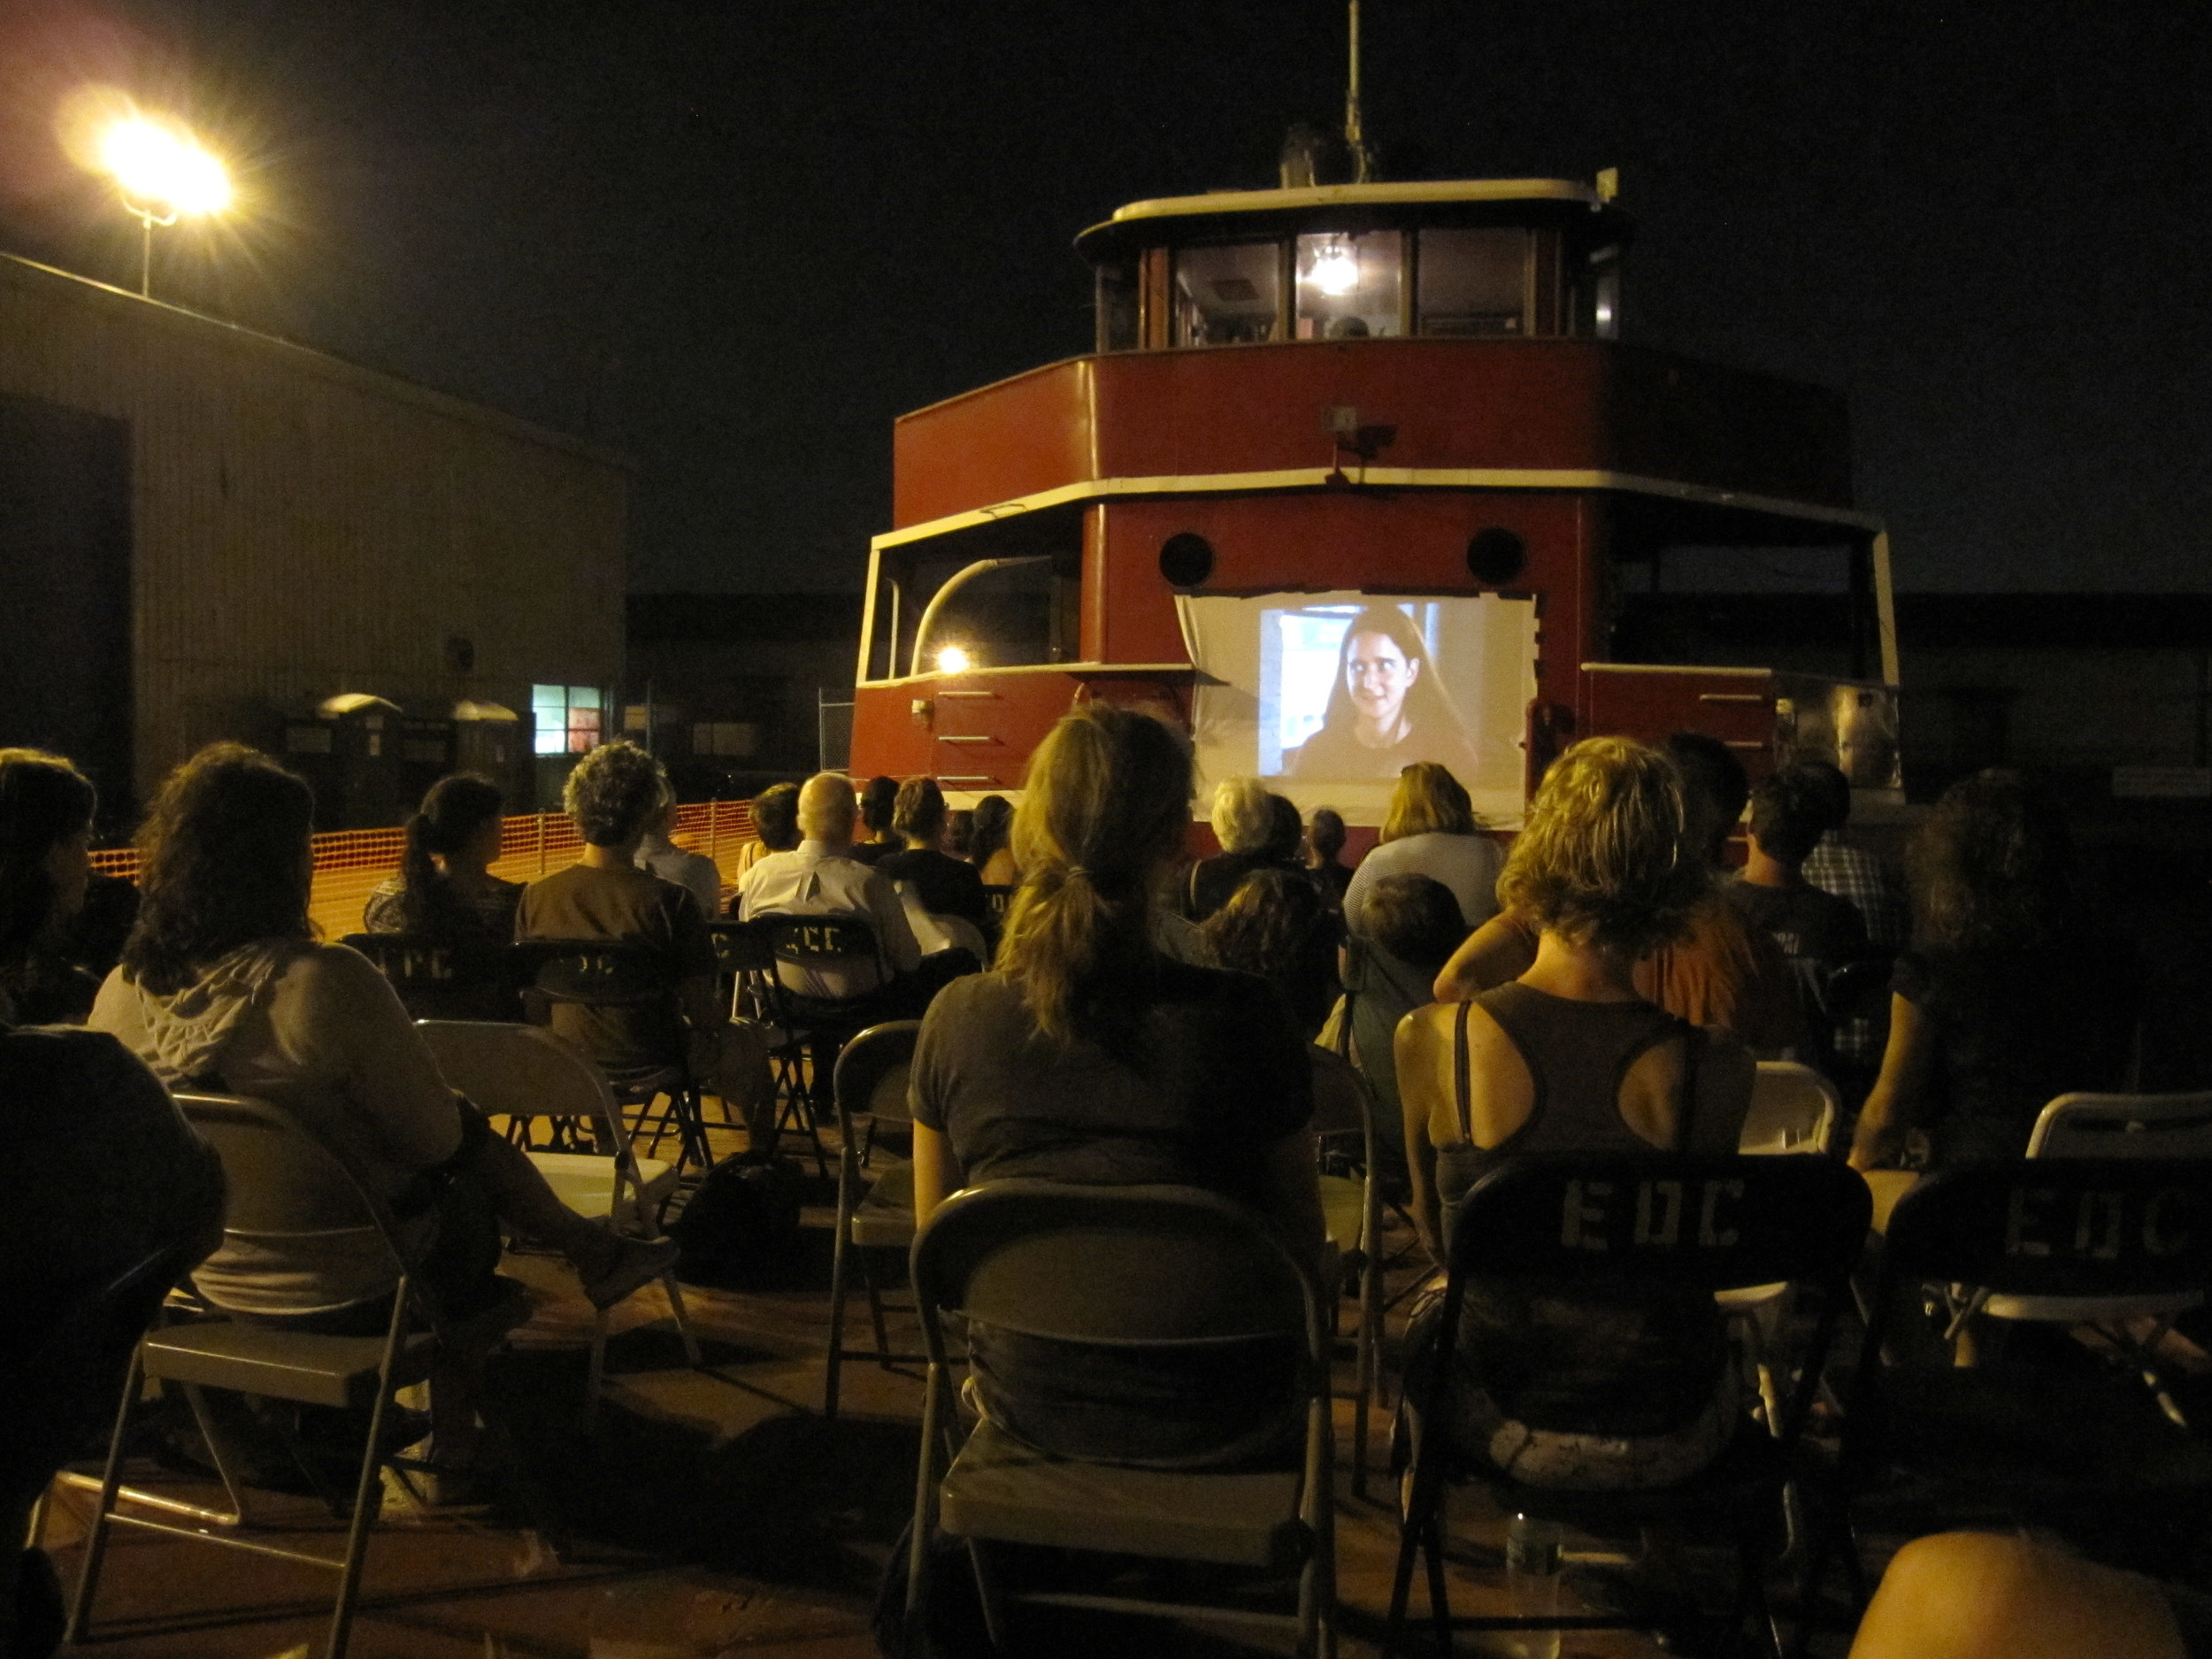 TankerFlicks aboard the Mary Whalen